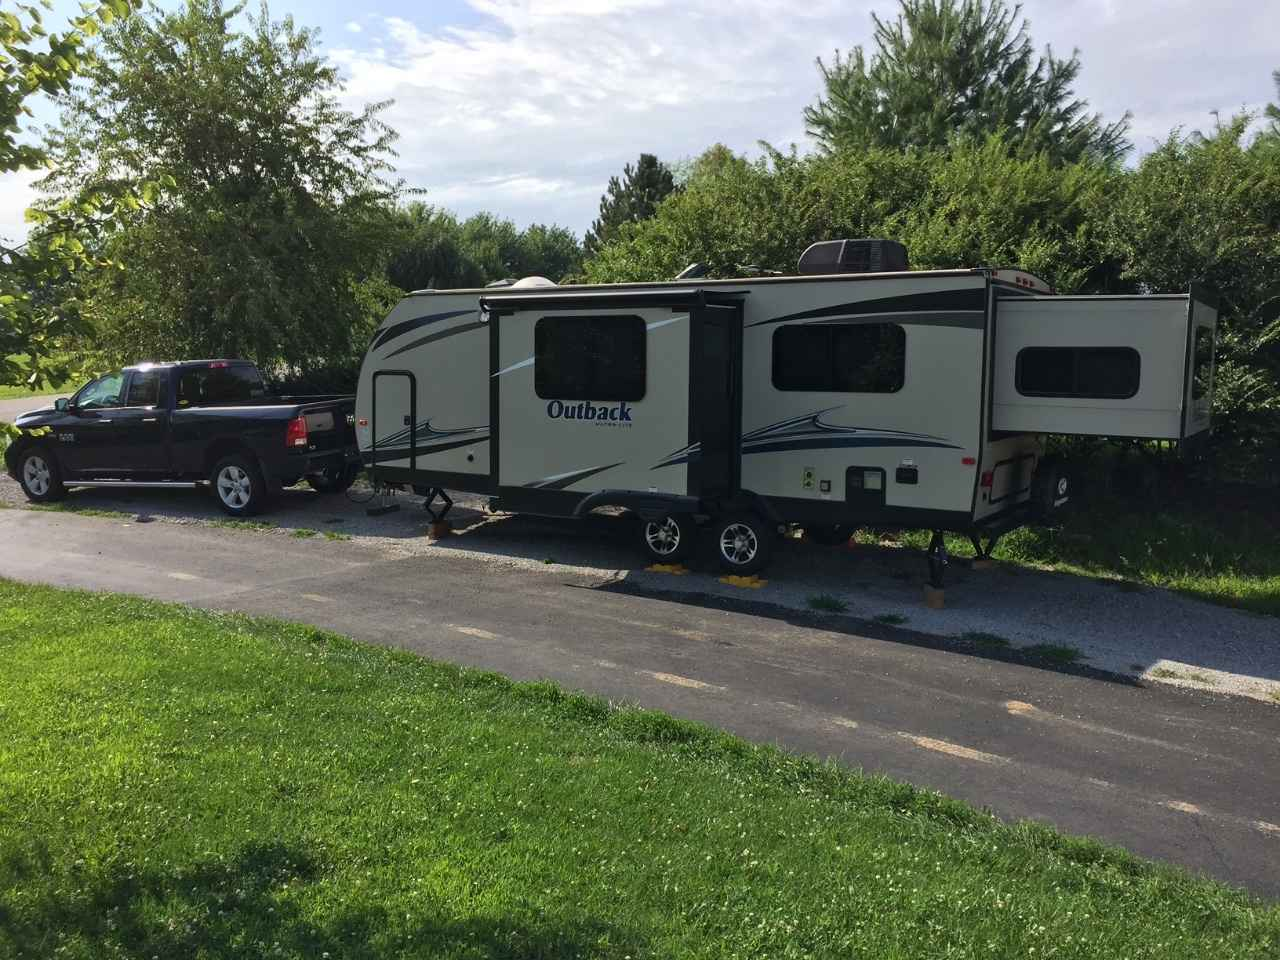 Outback Travel Trailer